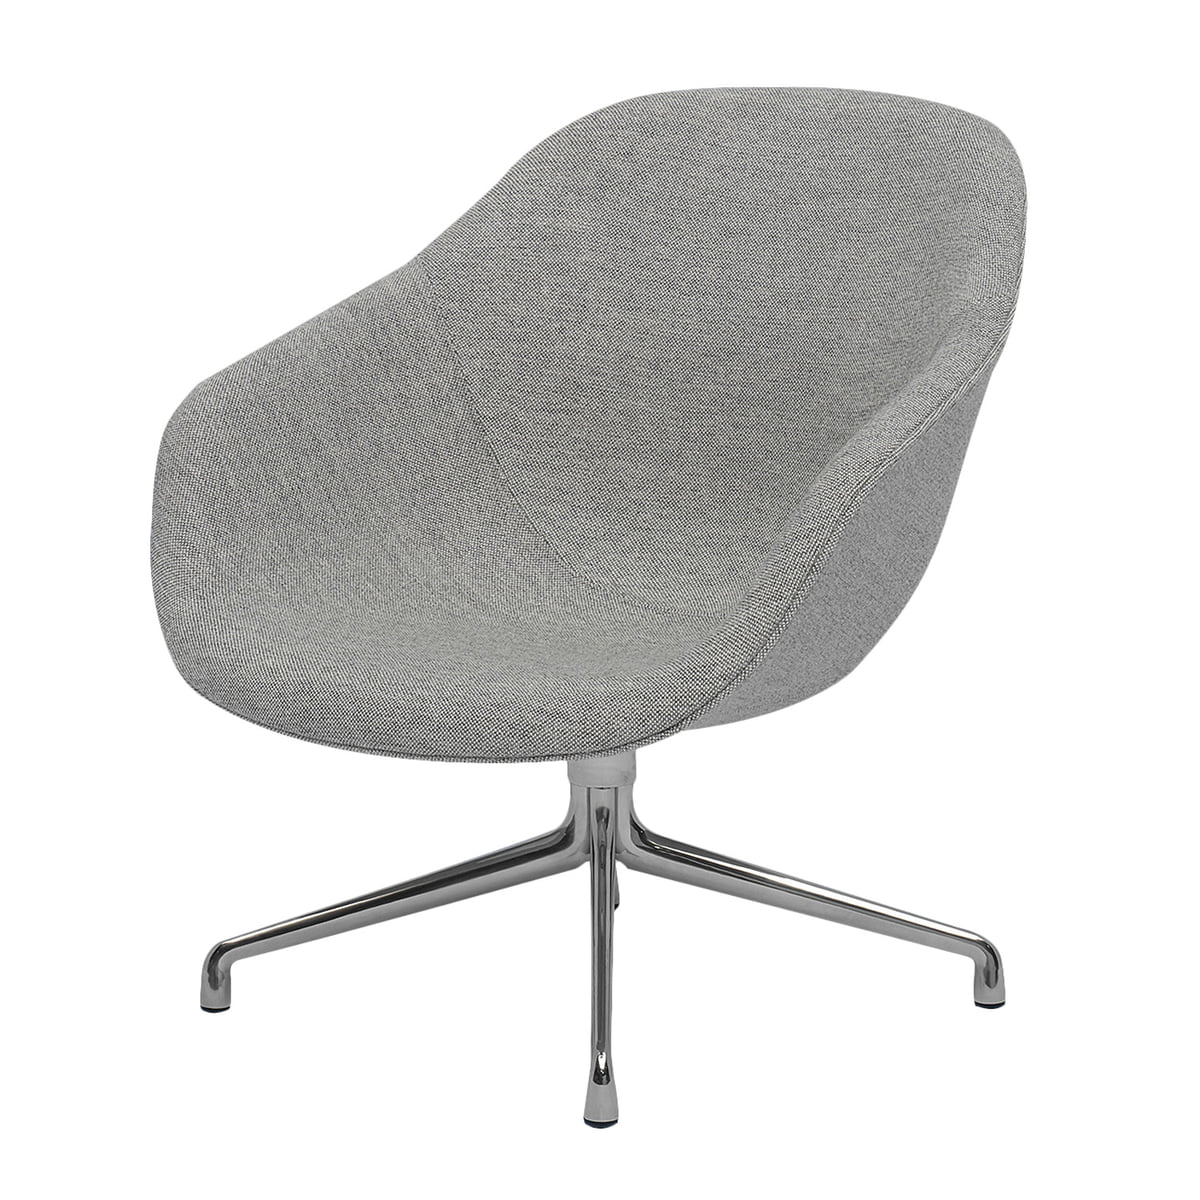 About A Lounge Chair Aal 81 Von Hay Connox